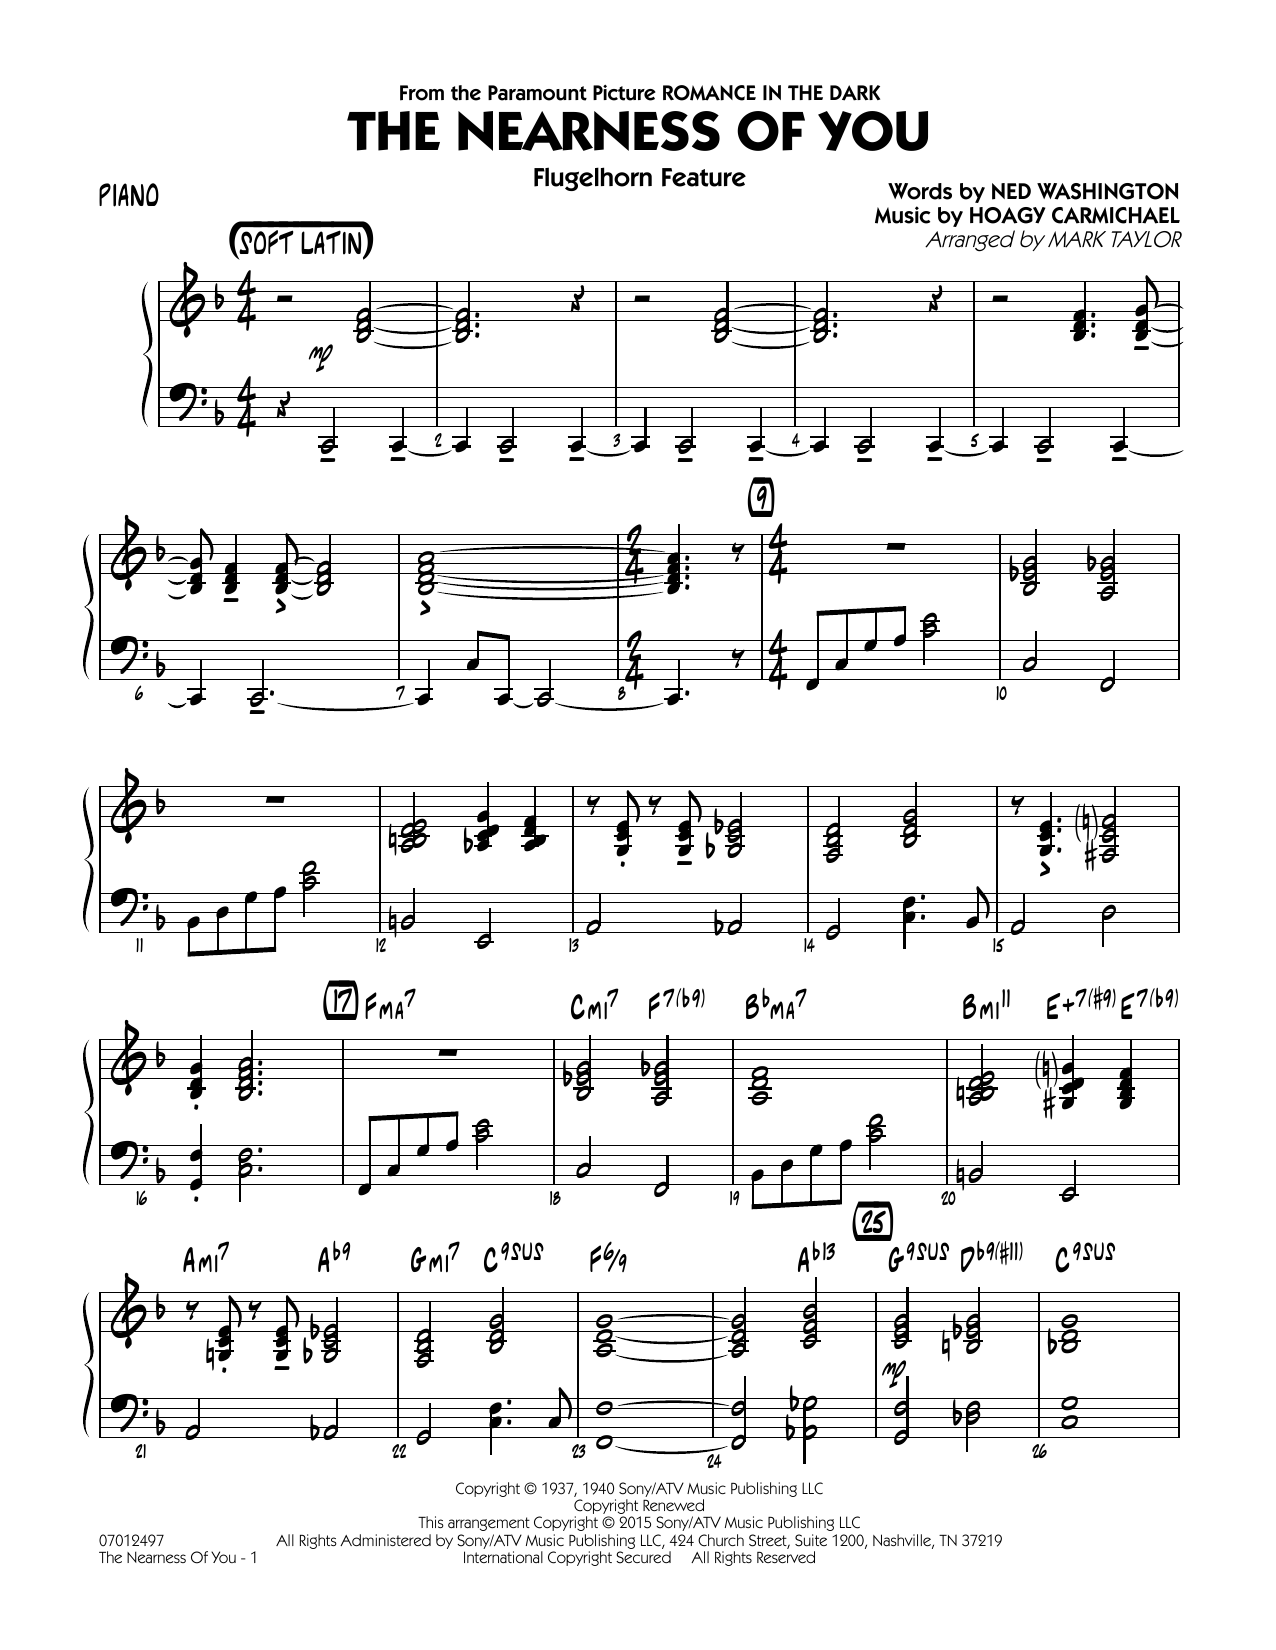 The Nearness of You (Flugelhorn Feature) - Piano (Jazz Ensemble)